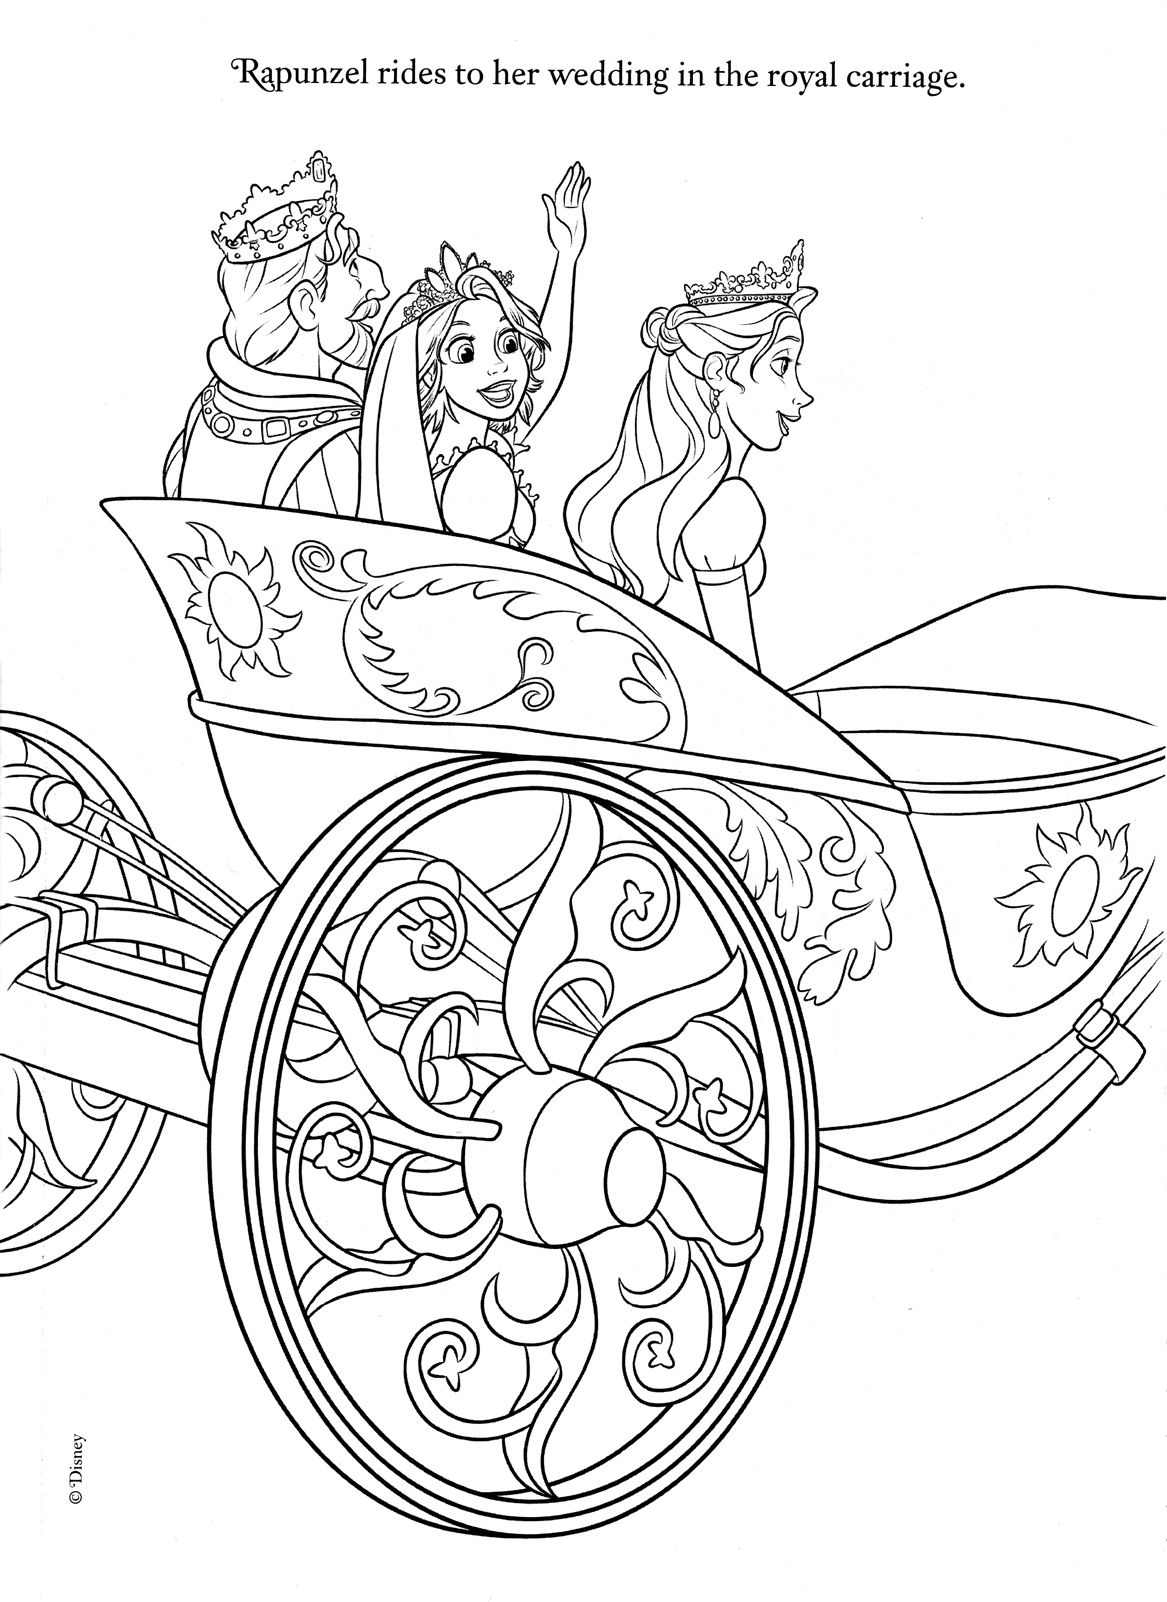 Printable coloring sheets wedding - Printable Wedding Coloring Book Pages 10